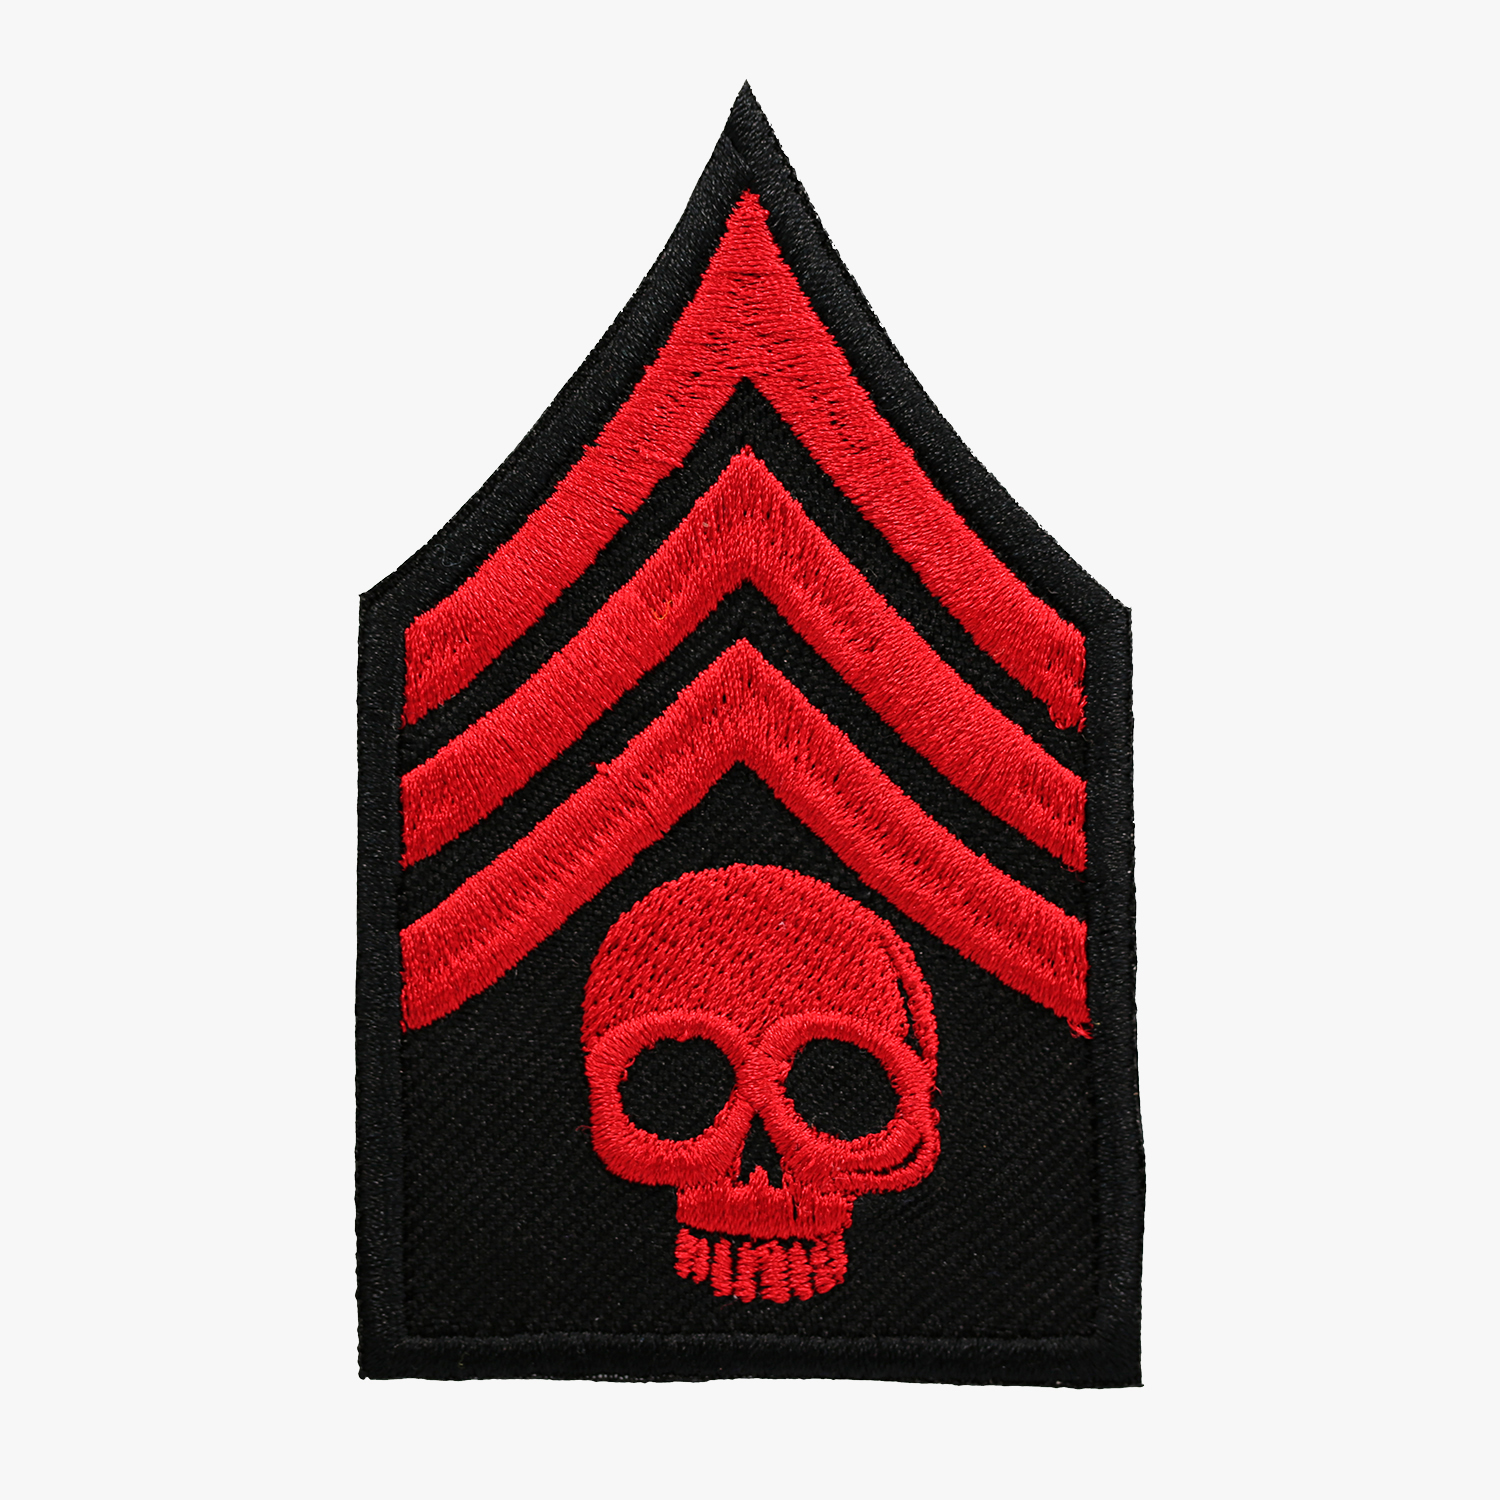 SERGEANT SKULLBIKER EMBROIDERY PATCH